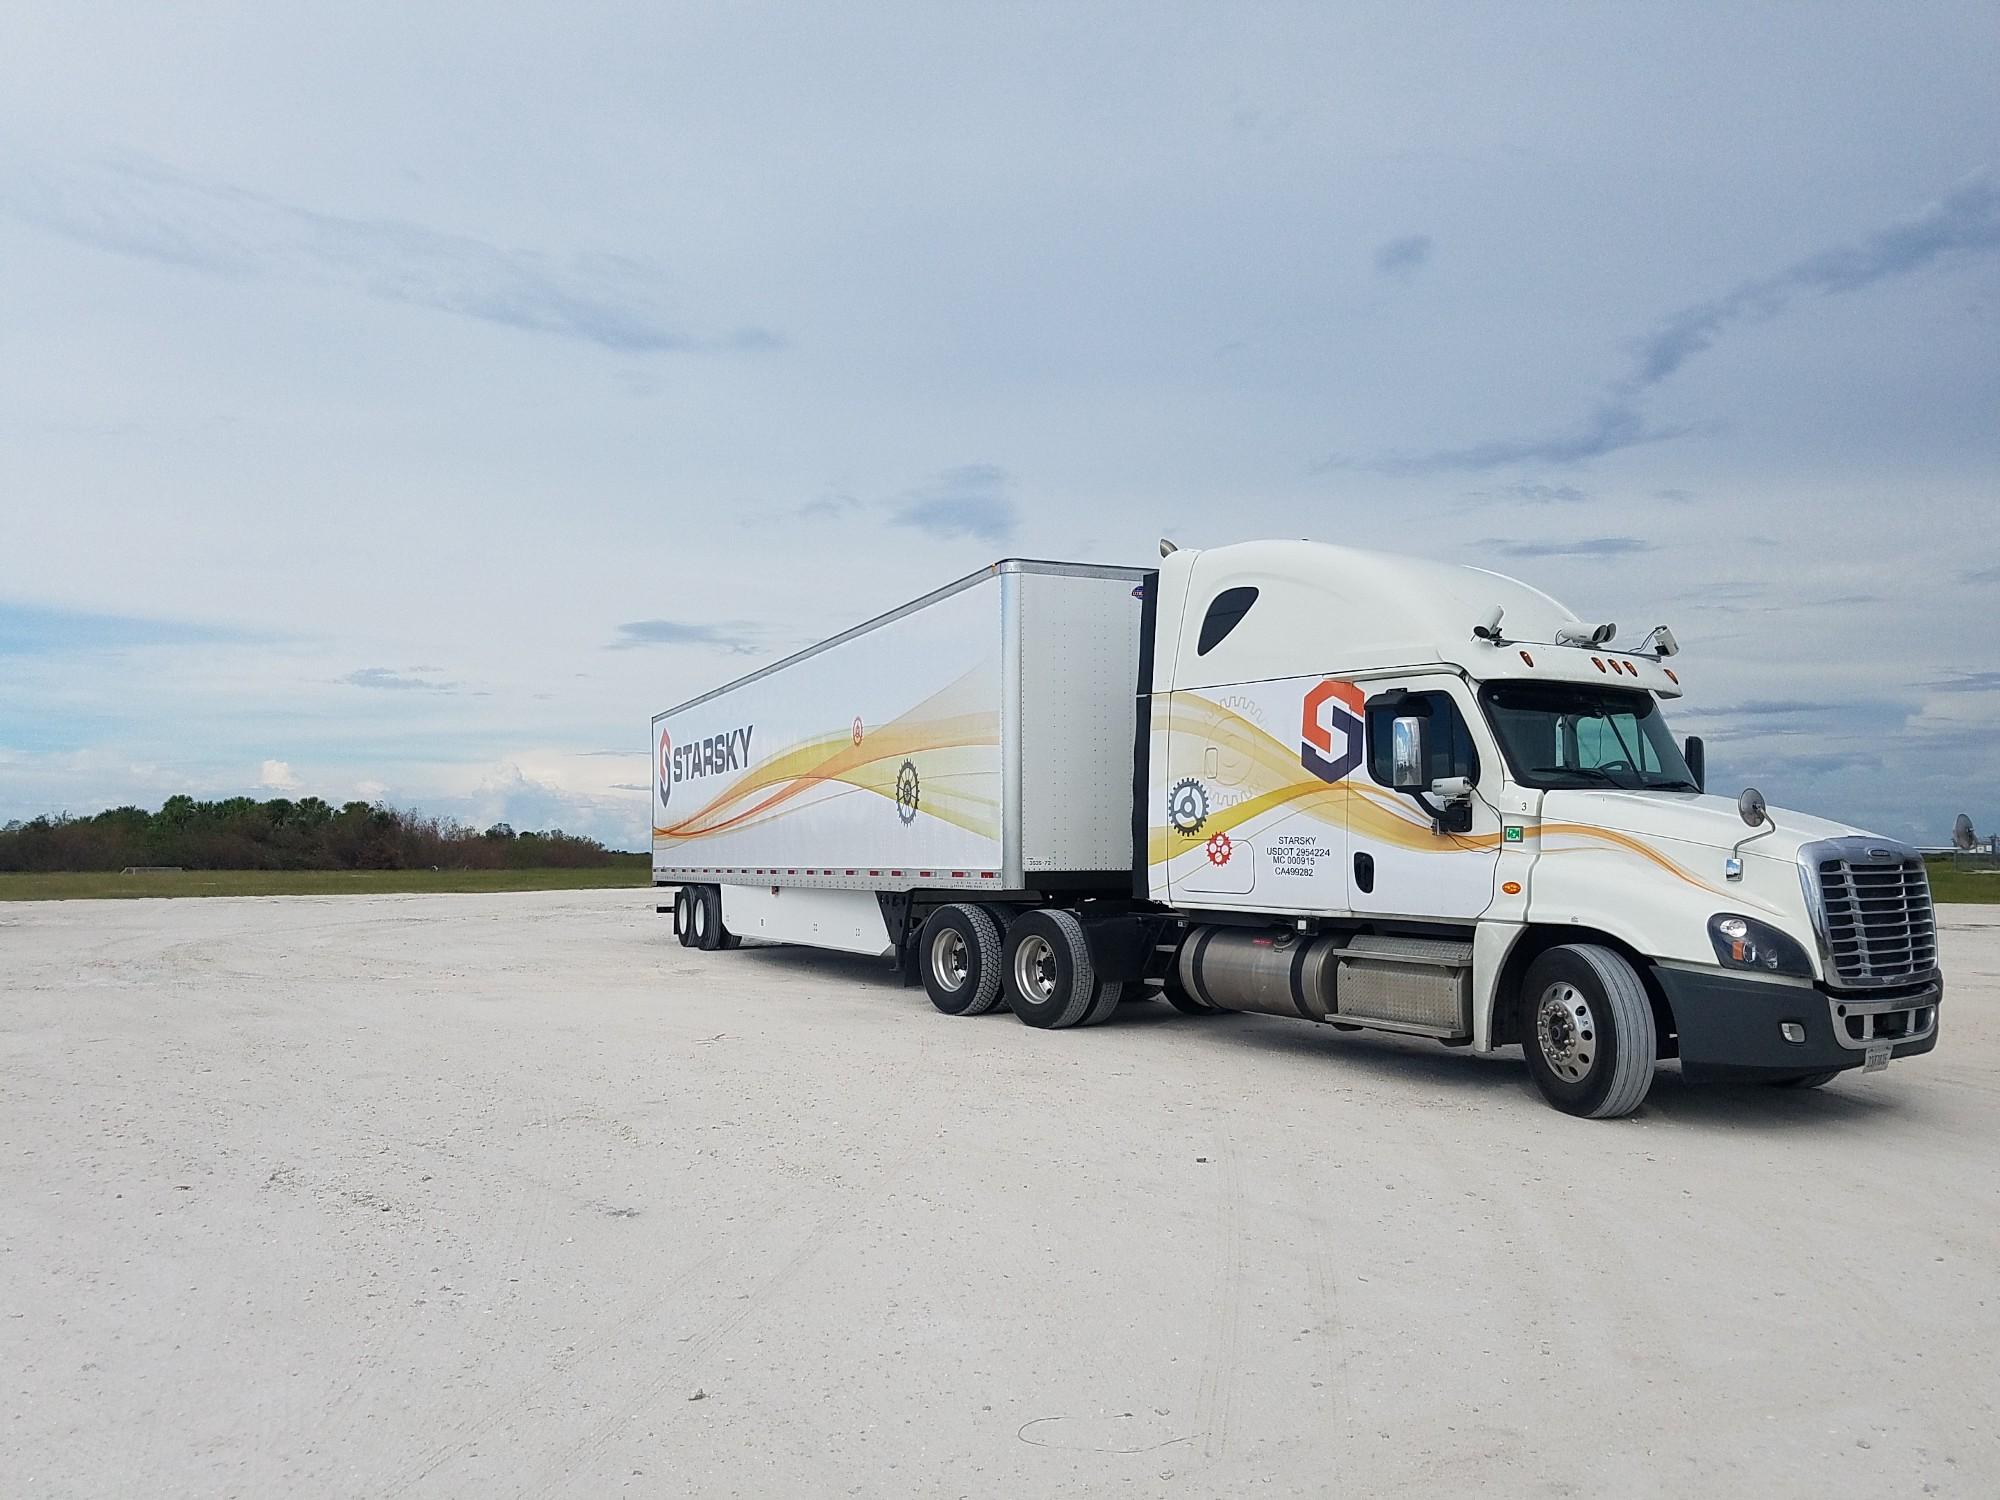 Starsky robotics drove a fully driverless truck and raised 165m photo credit david rorex malvernweather Image collections